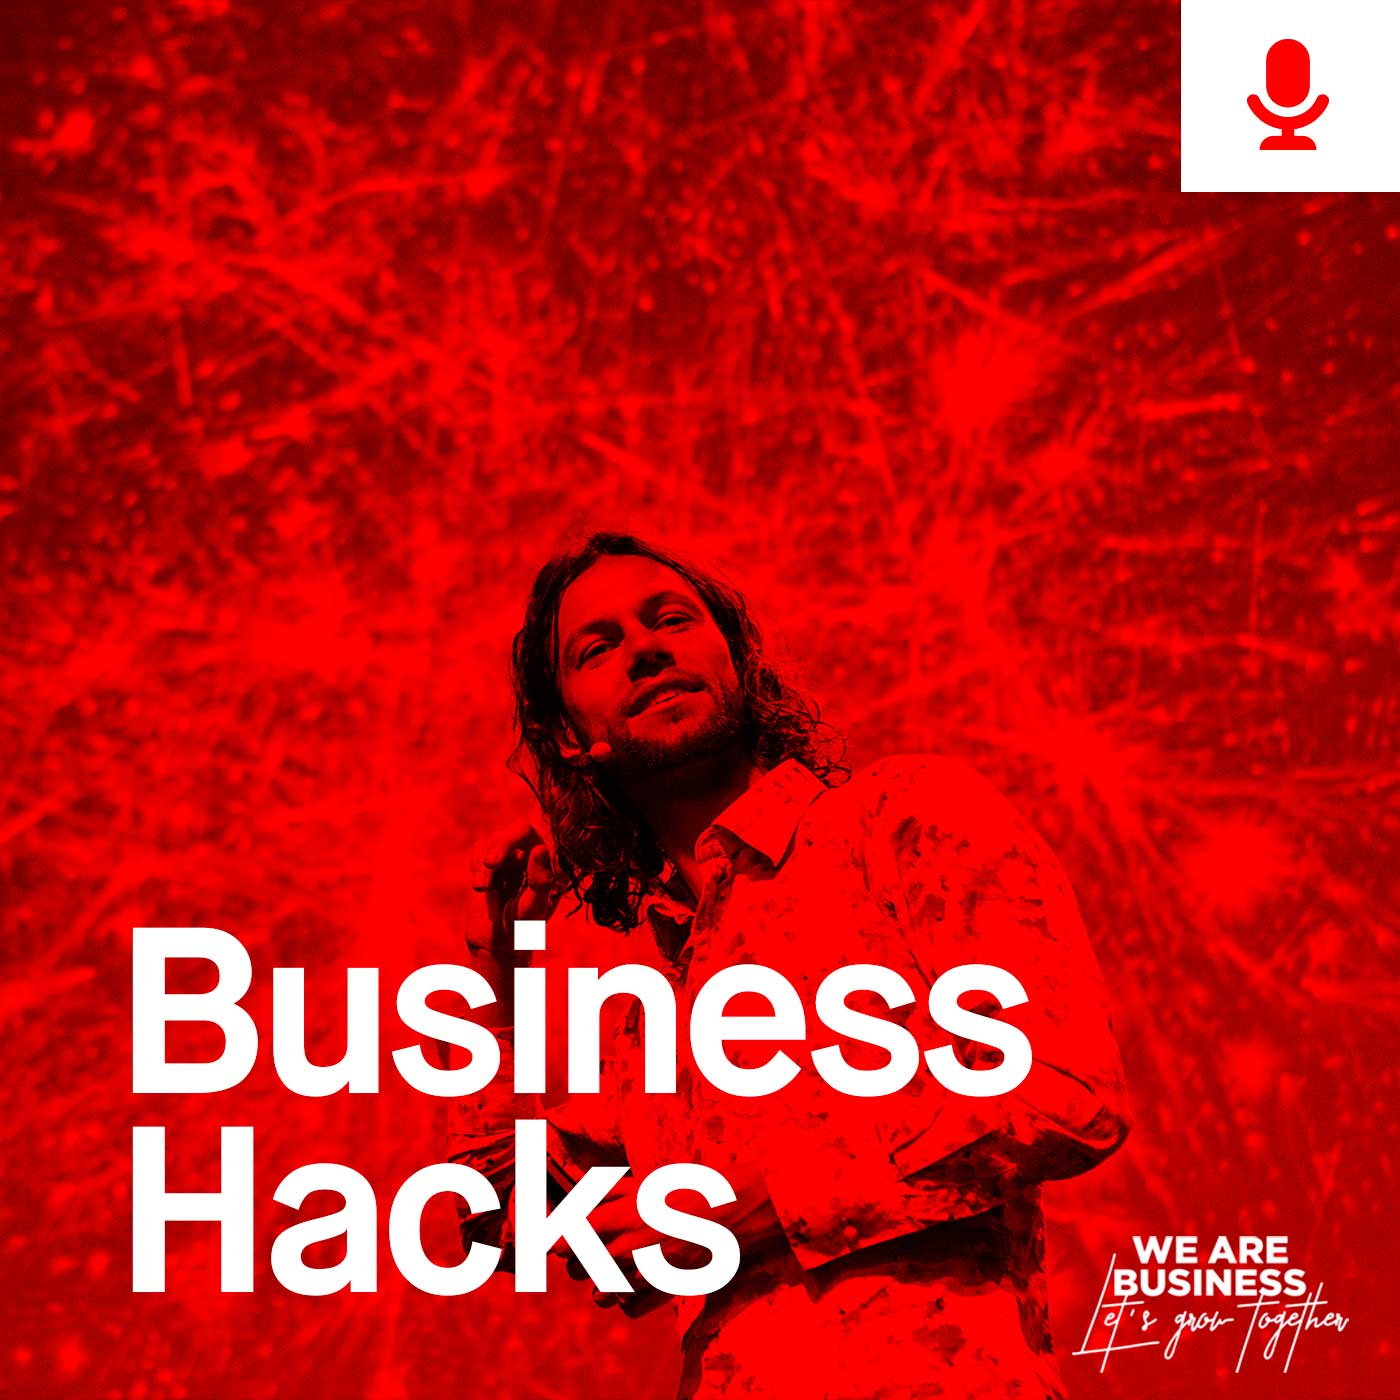 Business Hacks